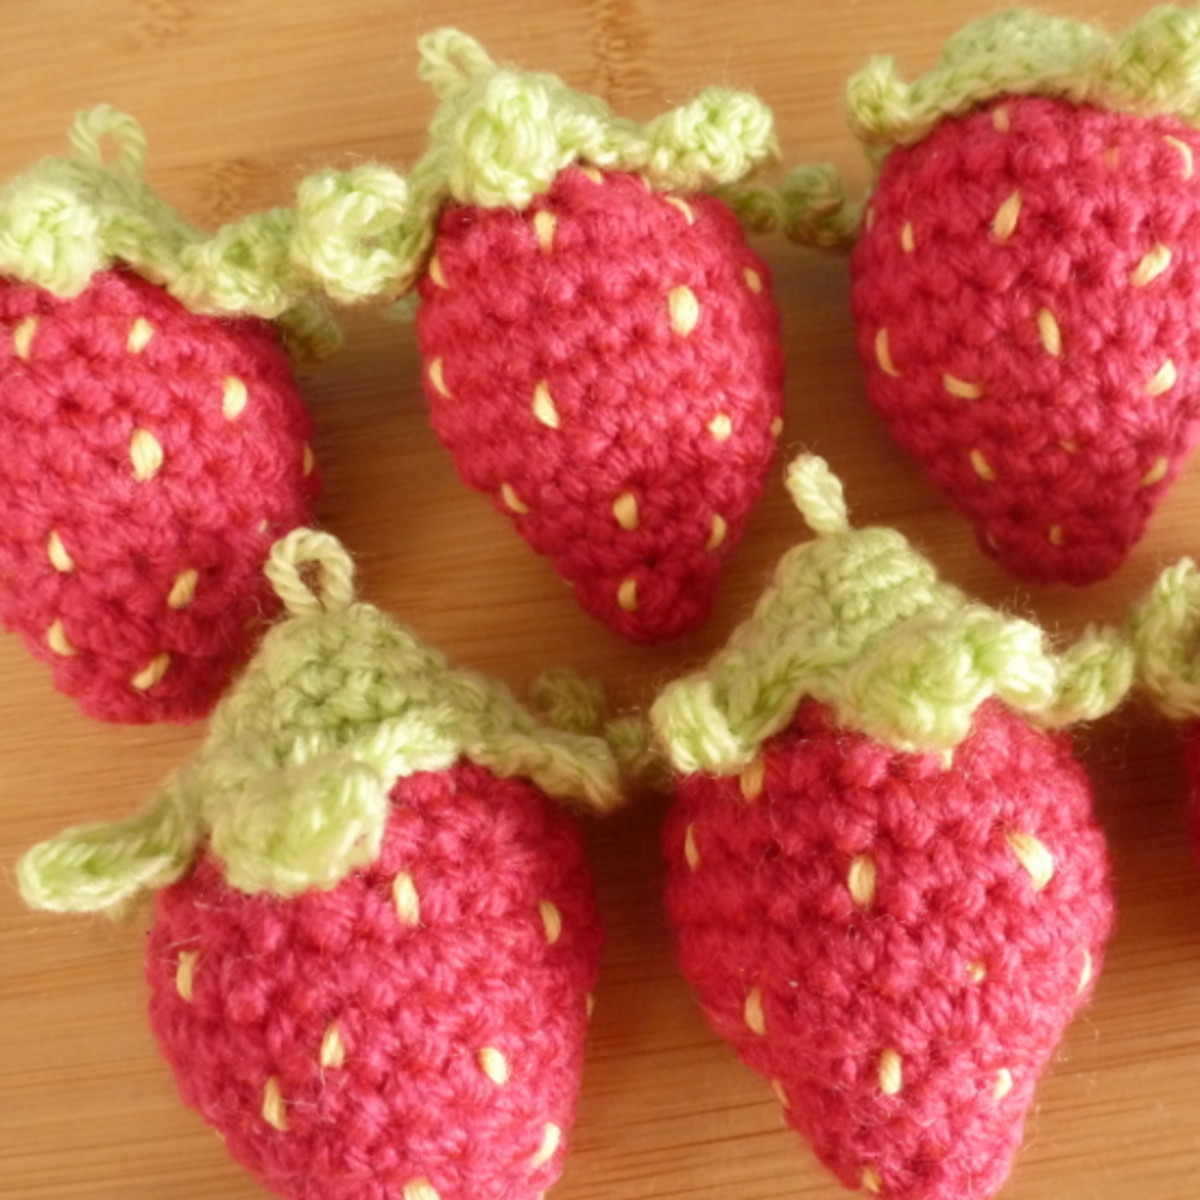 Mini crochet plush strawberries ready to use as decorations.